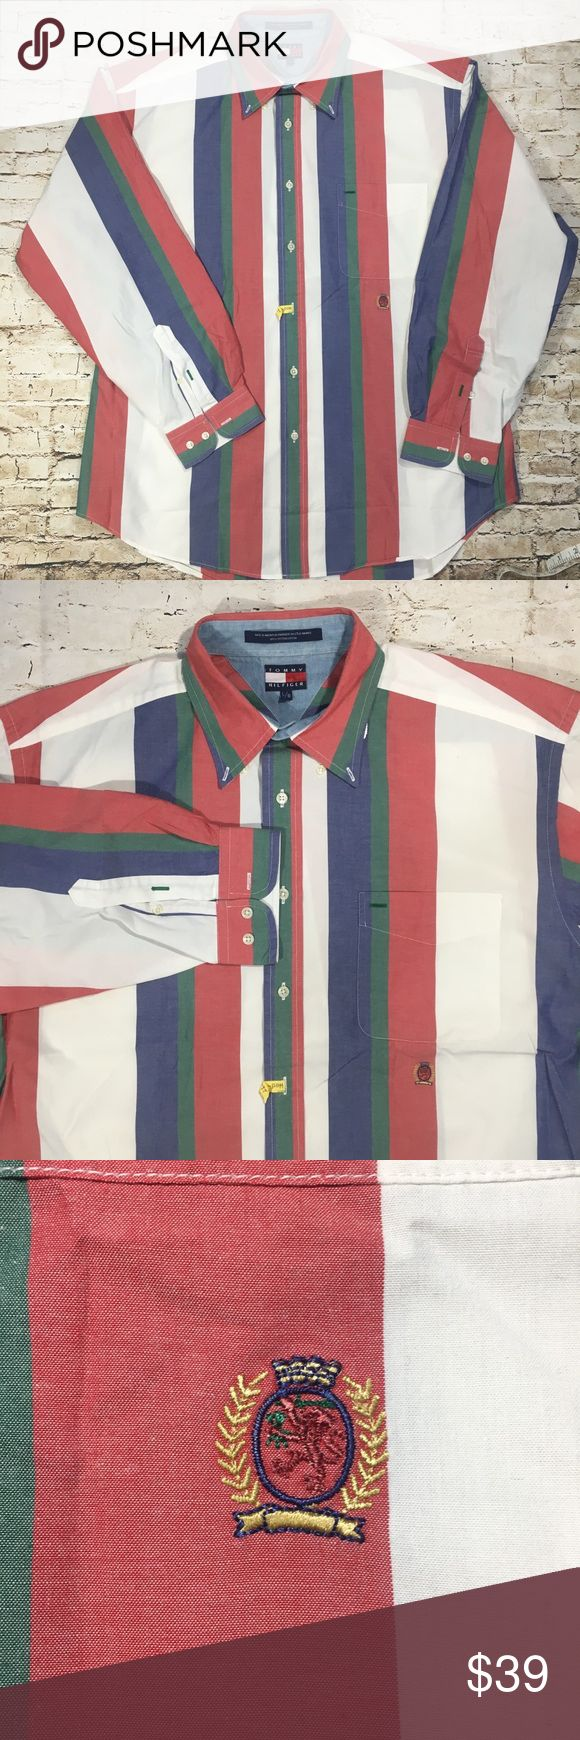 """Vintage Tommy Hilfiger Striped Button Down Large Pre-owned, vintage Tommy Hilfiger button down shirt with button down collar.  Features thick, multi-color vertical striping and crest under pocket.    No rips.  No stains.  No tears.    My goal is to make sure that you are satisfied with your purchase.  Please review the following measurements to ensure proper fit upon arrival of your new shirt.   Width (armpit to armpit): 25.5""""  Length: 30""""  Sleeve length: 23.5""""  Thank you for looking at my…"""